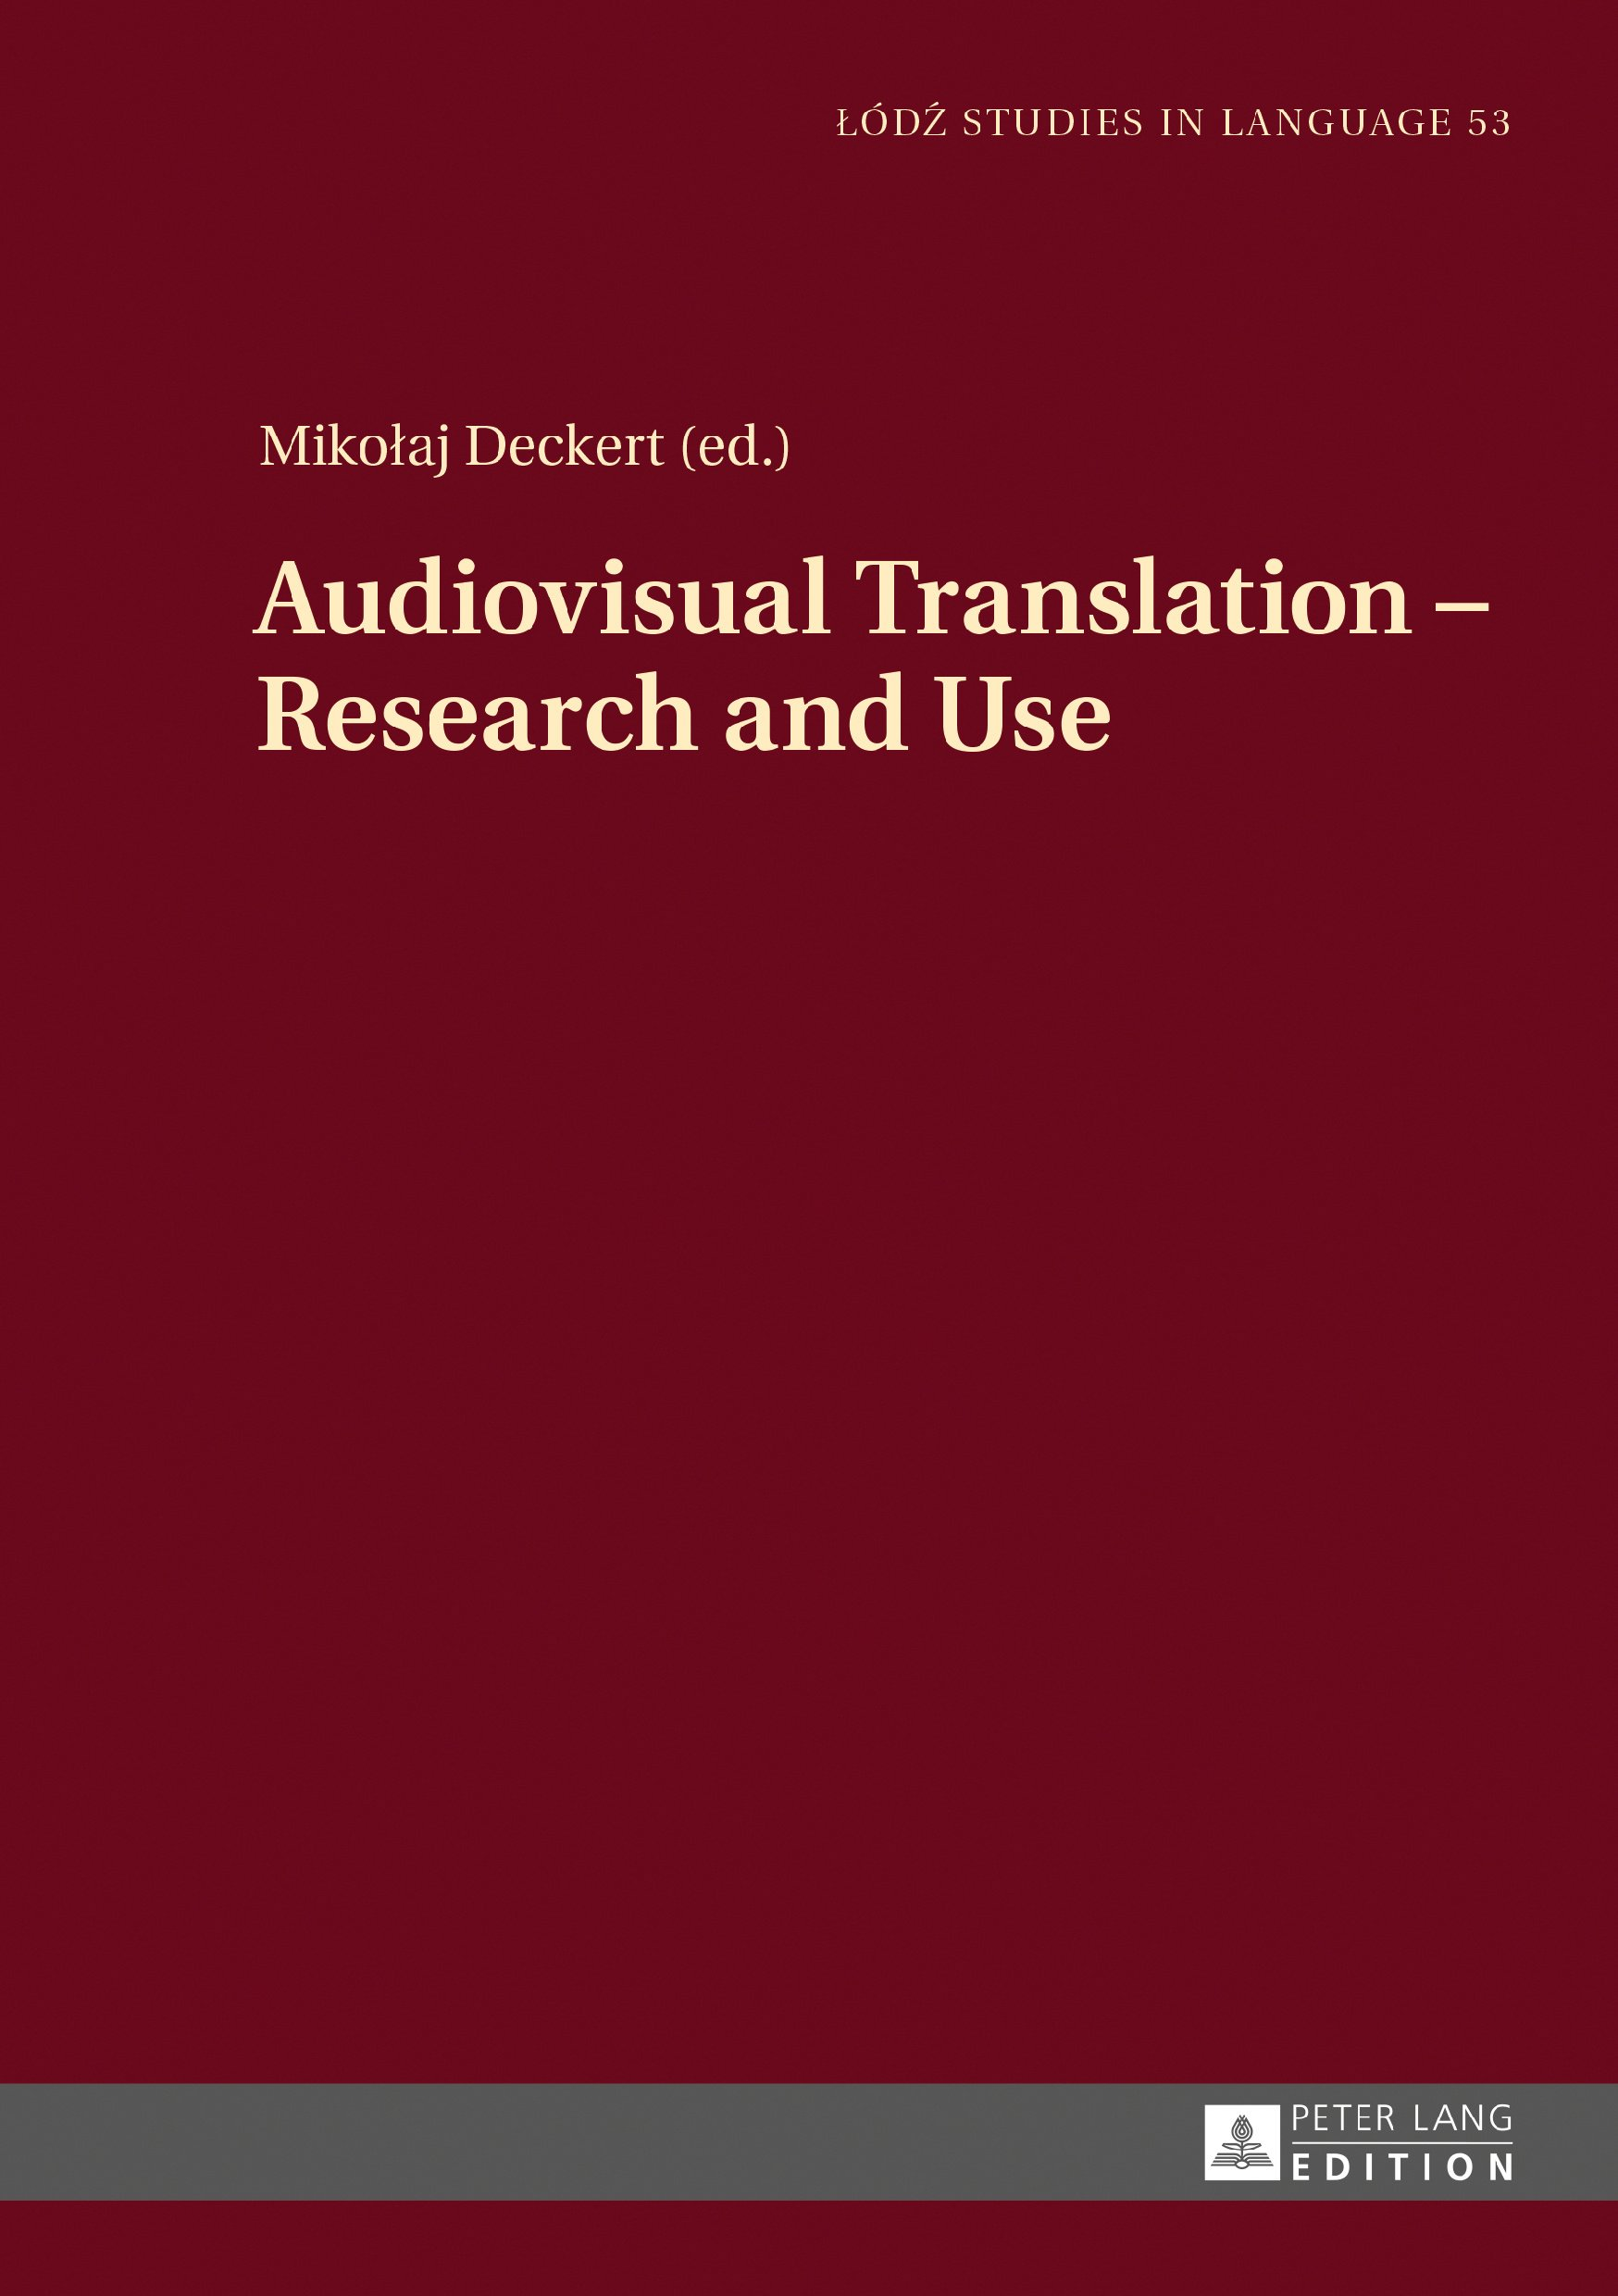 Audiovisual Translation – Research and Use (Lodz Studies in Language)